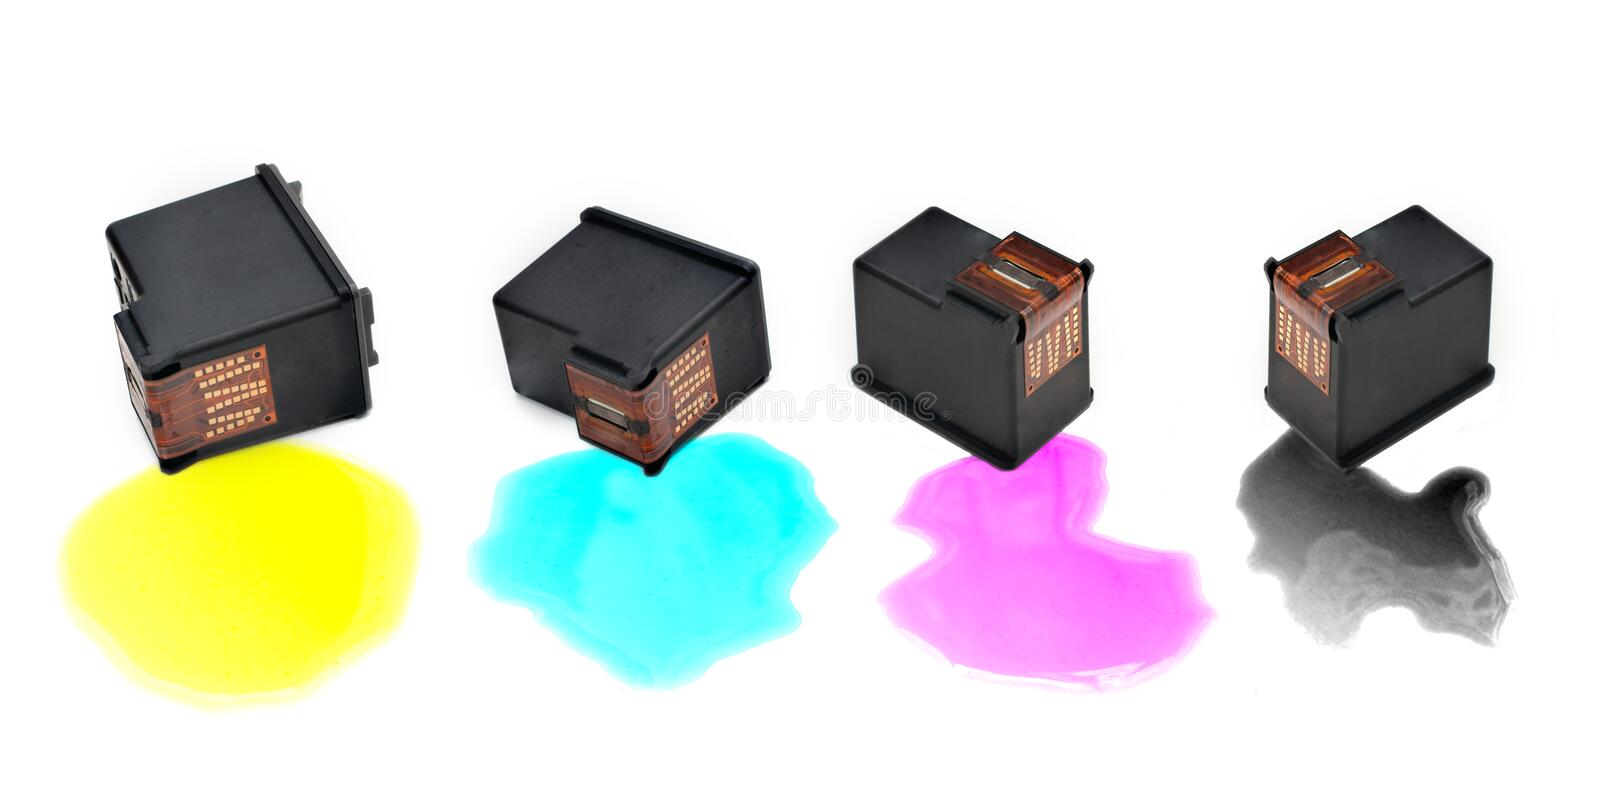 Colour Ink Cartridges royalty free stock image